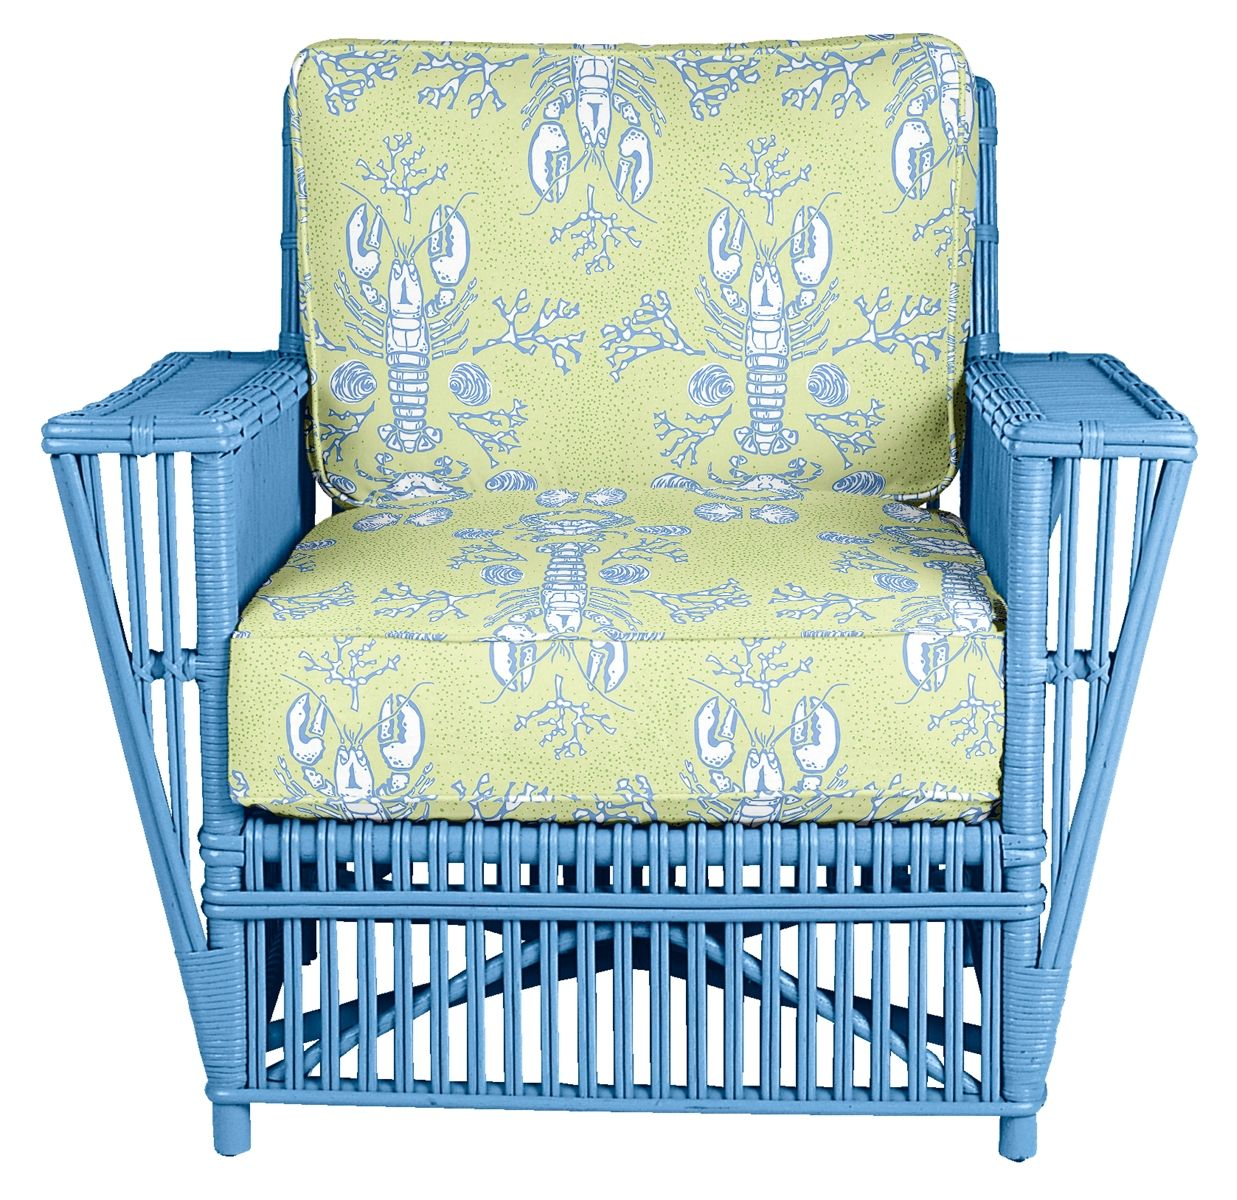 Stella Wicker Arm Chair Maine Cottage Options For Different Colors Fabrics Don T Need The Lobster Print Armchair Chair Wicker Furniture